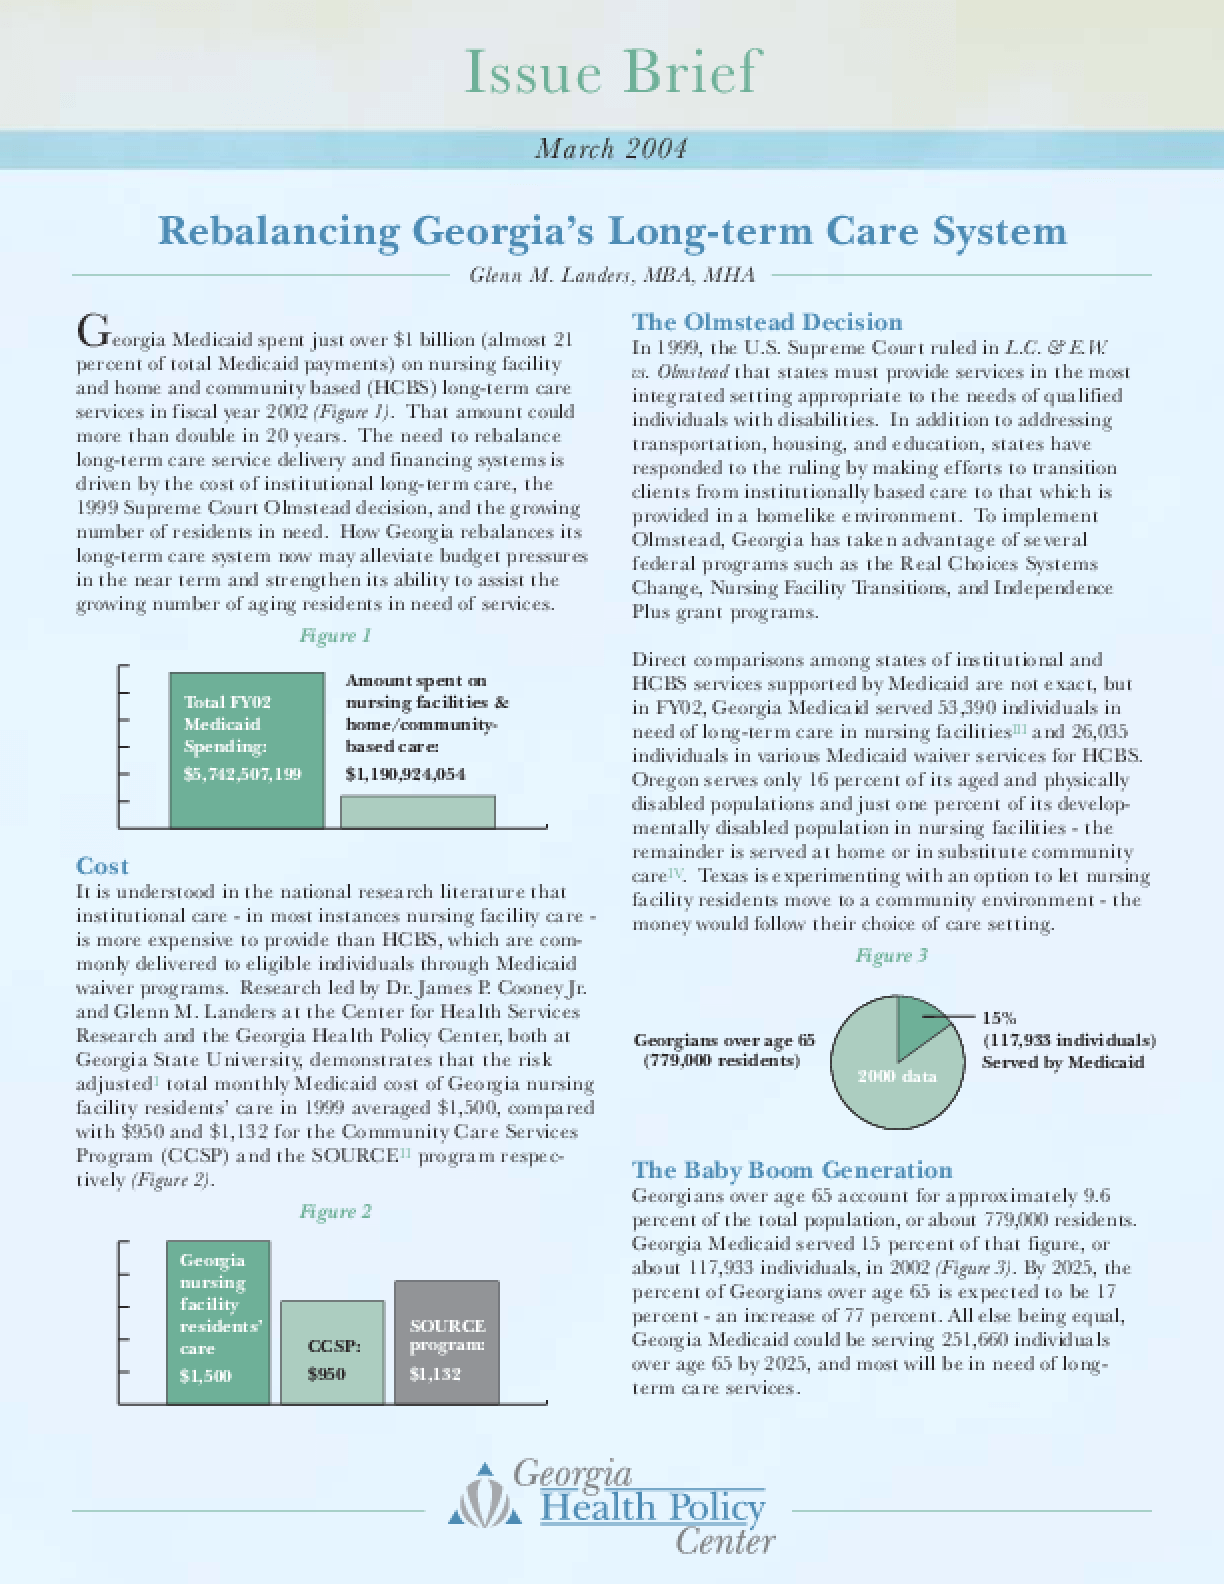 Rebalancing Georgia's Long Term Care System